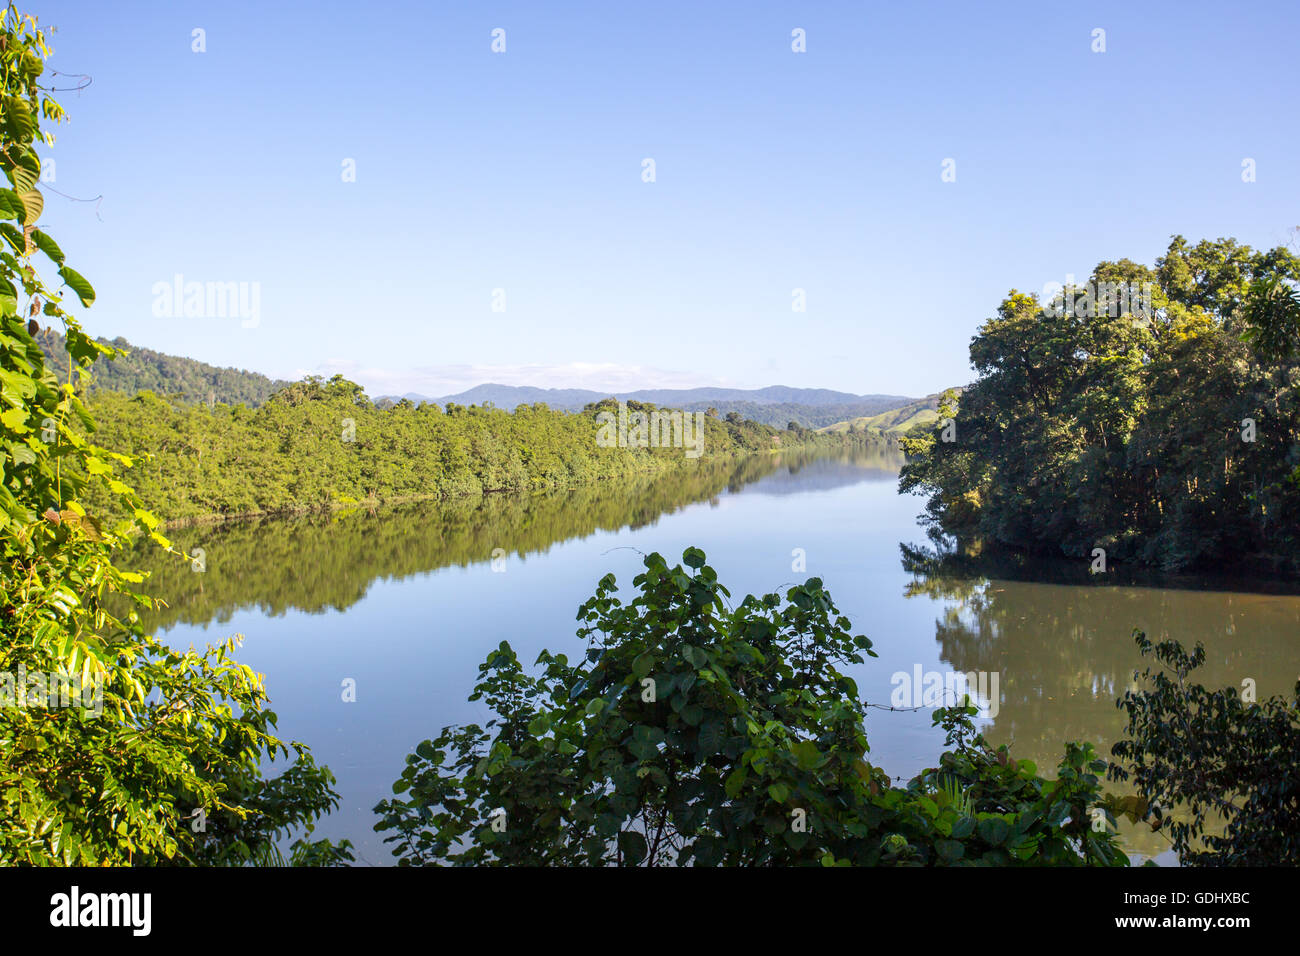 The Daintree River near the town of Daintree in far nth Queensland, Australia - Stock Image